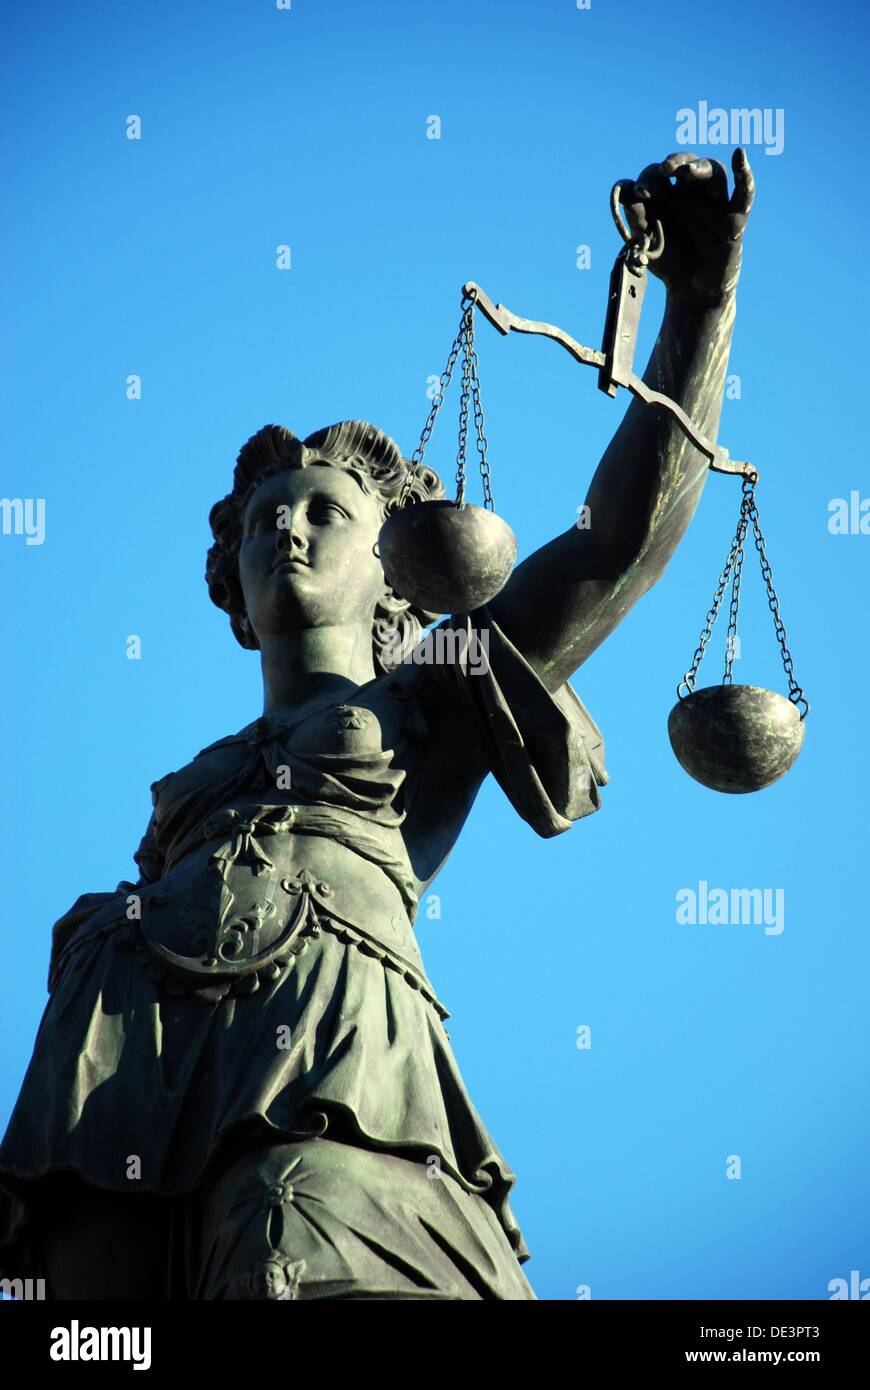 Statue of righteousness - Stock Image